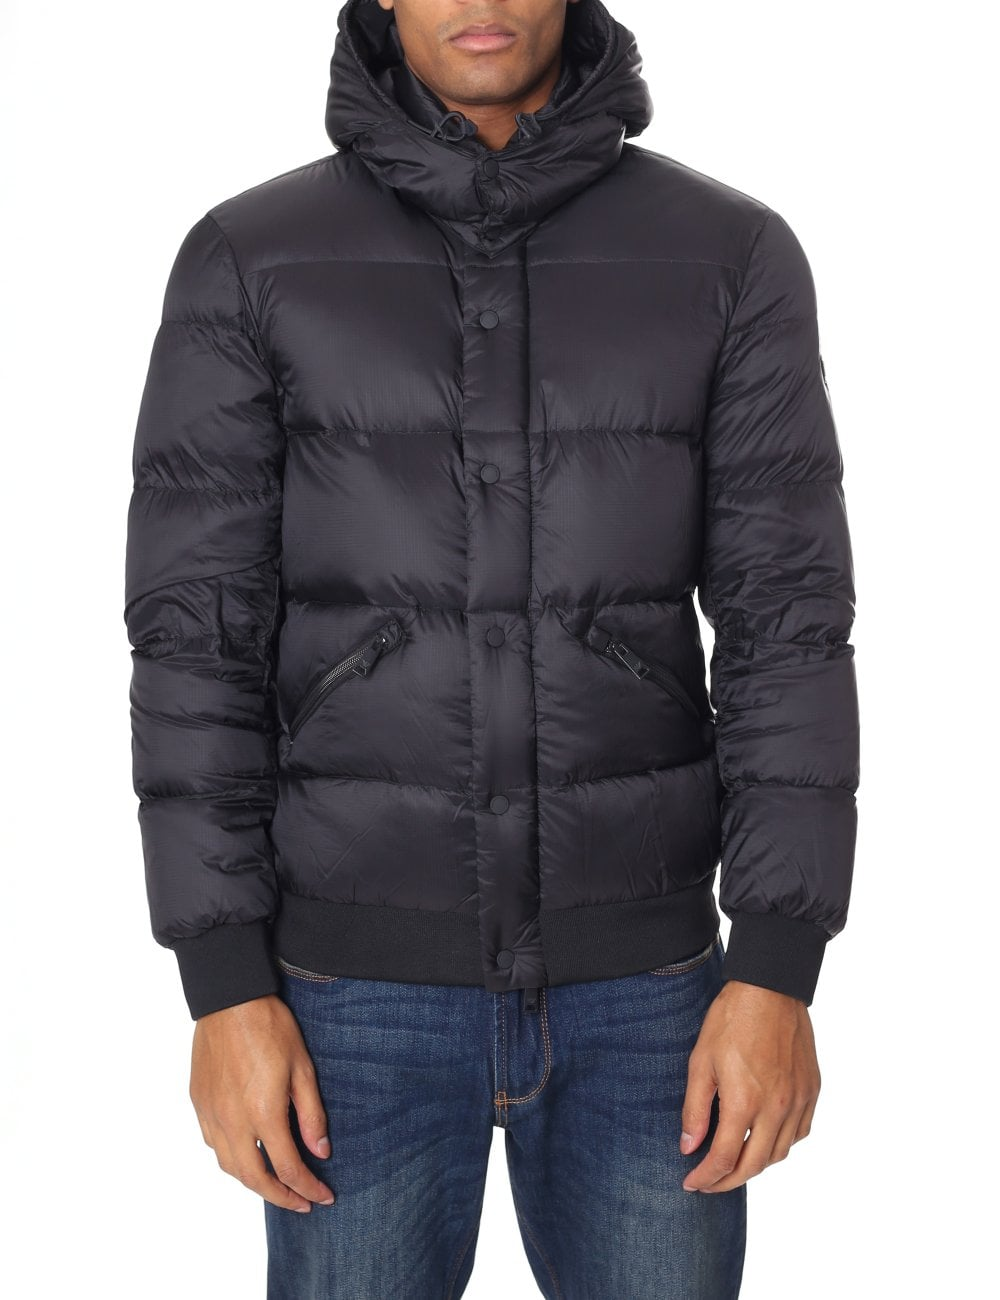 826ca578d939 Emporio Armani Men s Quilted Hooded Puffa Jacket